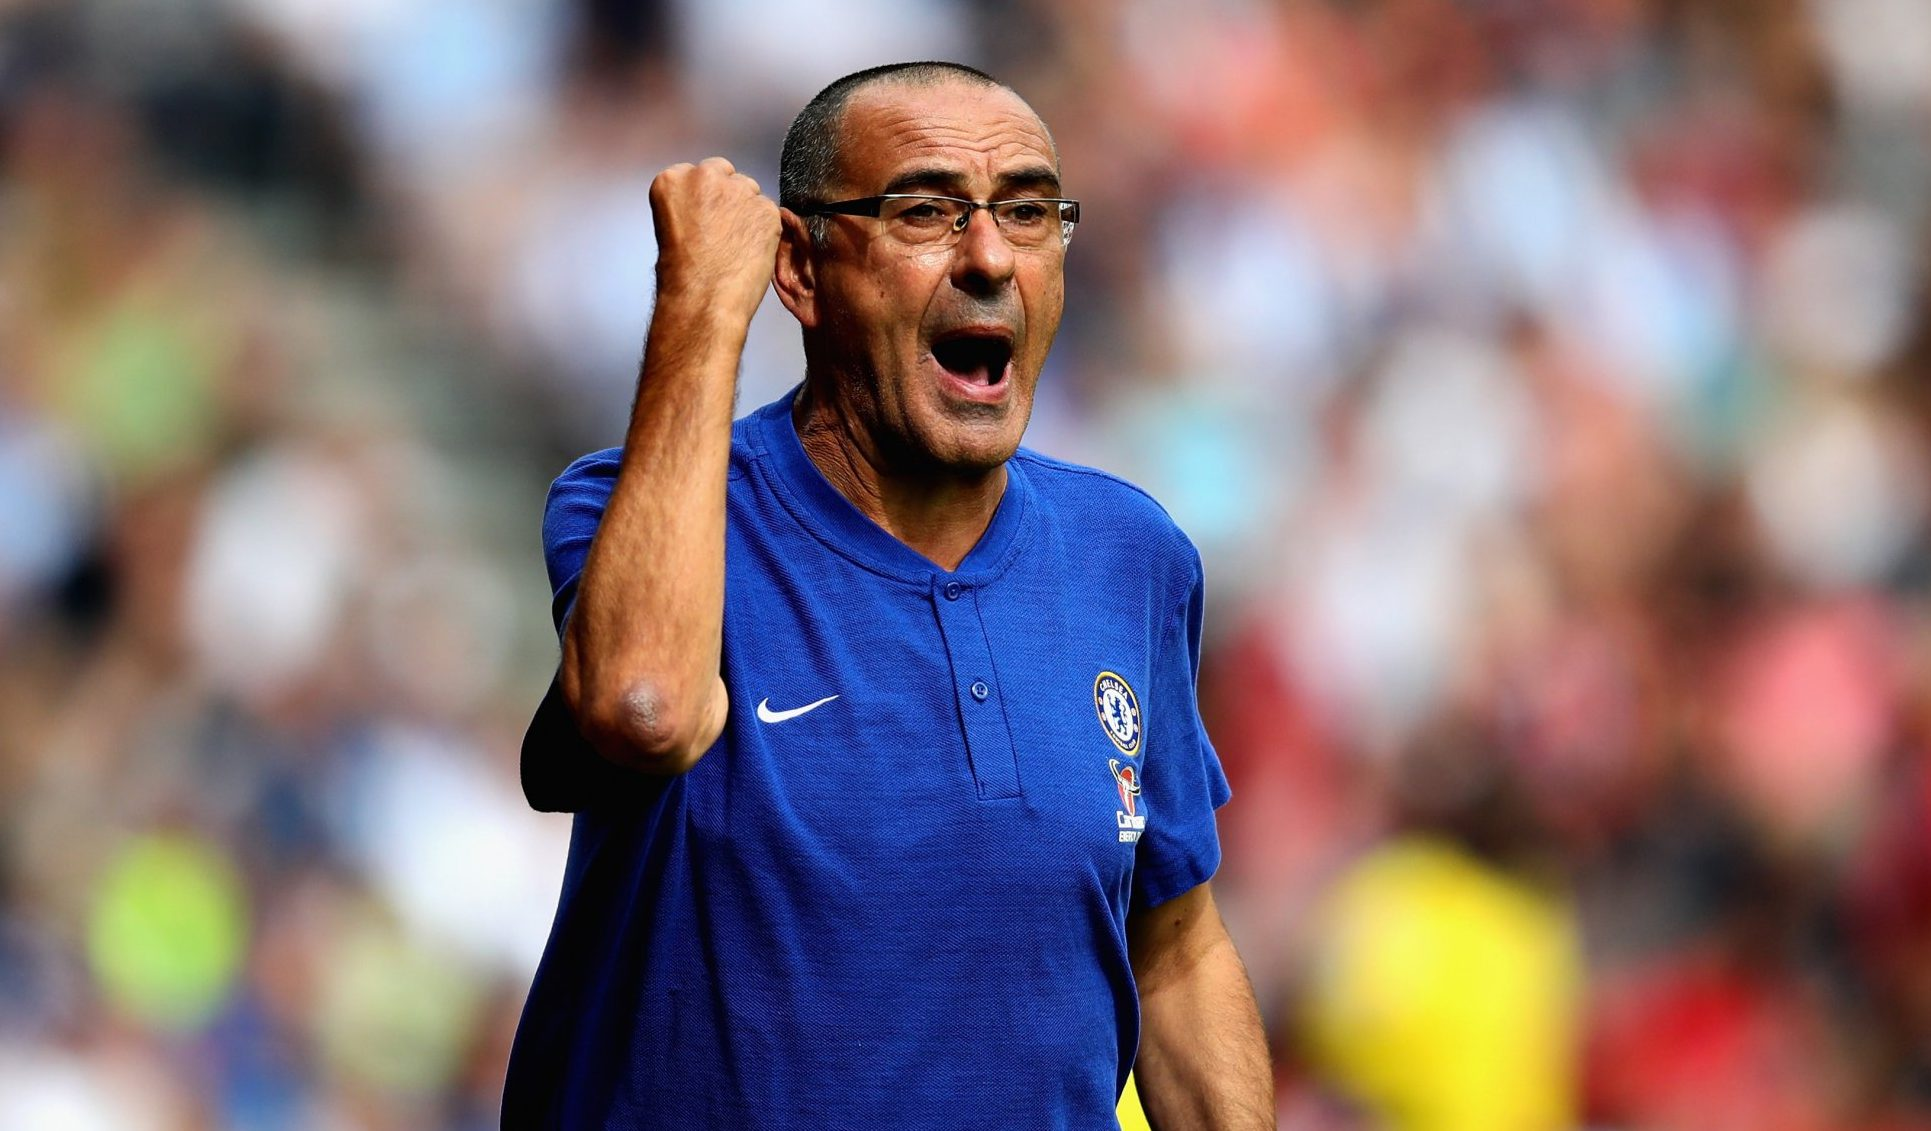 HUDDERSFIELD, ENGLAND - AUGUST 11: Chelsea manager Maurizio Sarri reacts during the Premier League match between Huddersfield Town and Chelsea FC at John Smith's Stadium on August 11, 2018 in Huddersfield, United Kingdom. (Photo by Chris Brunskill/Fantasista/Getty Images)